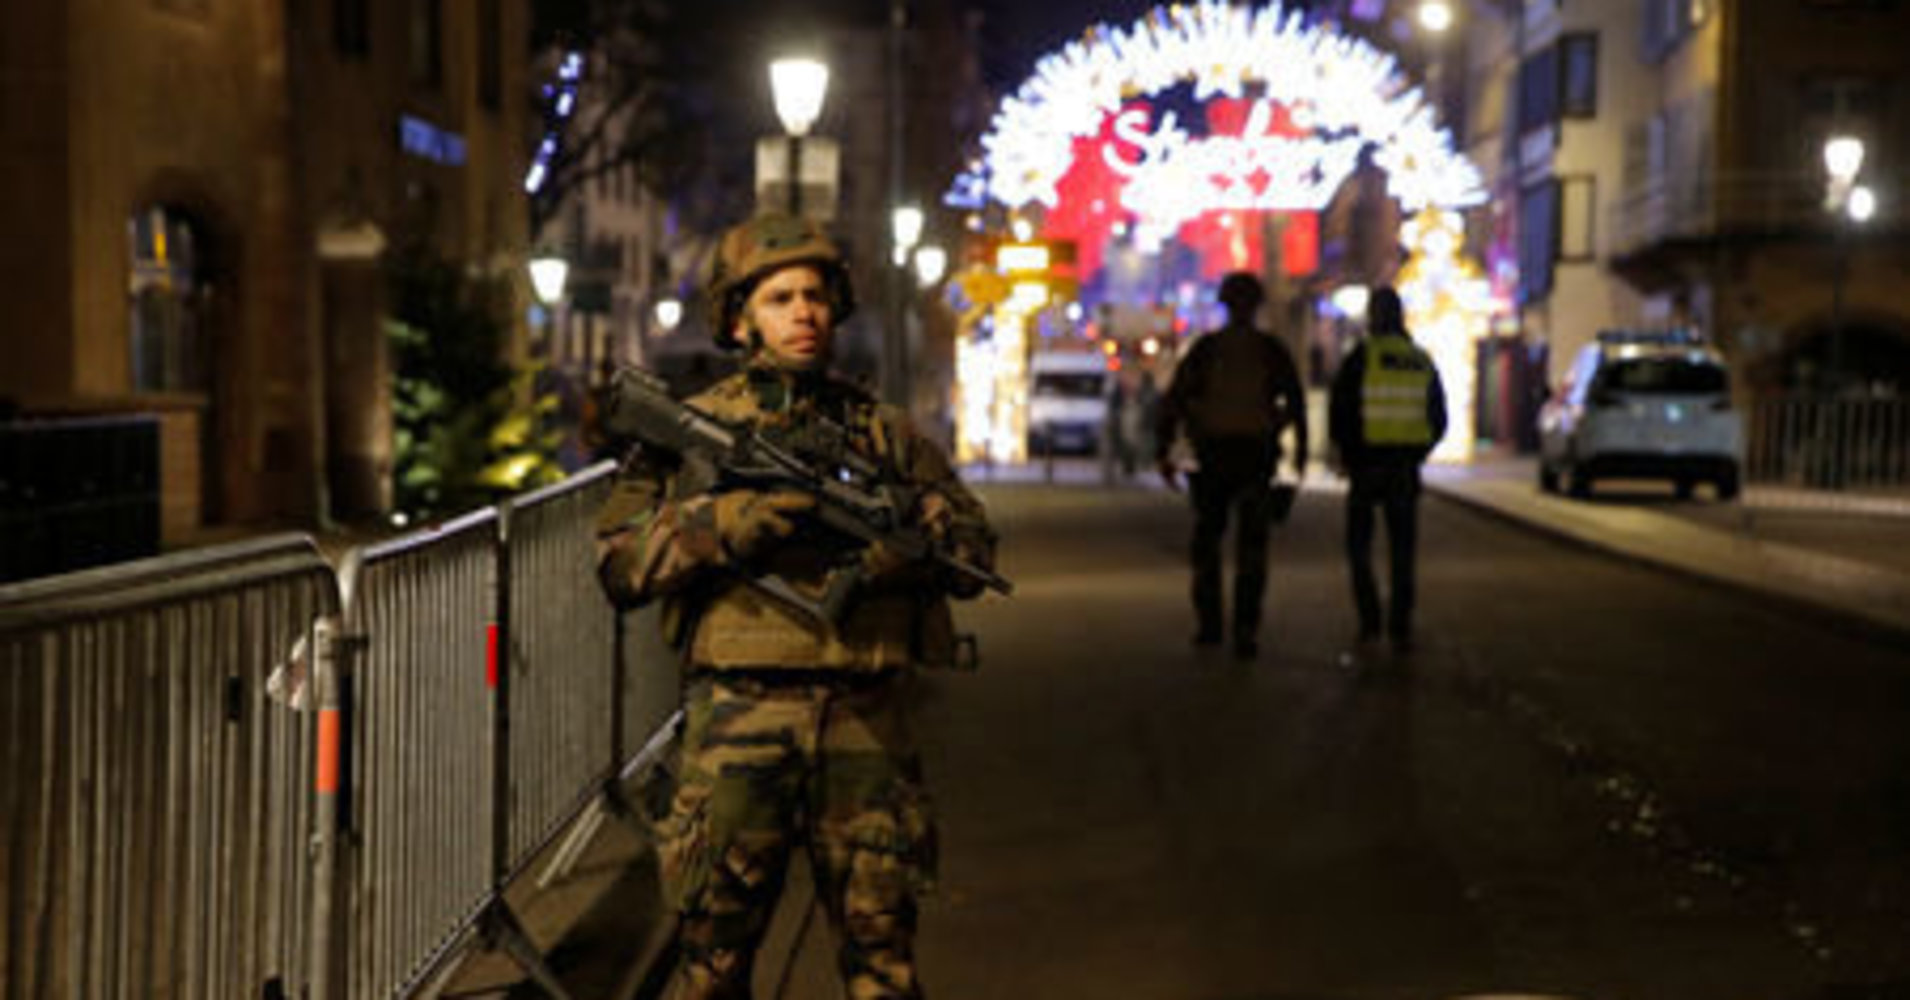 Strasbourg Shooting: At Least 2 Dead, Several Injured And In Critical Condition